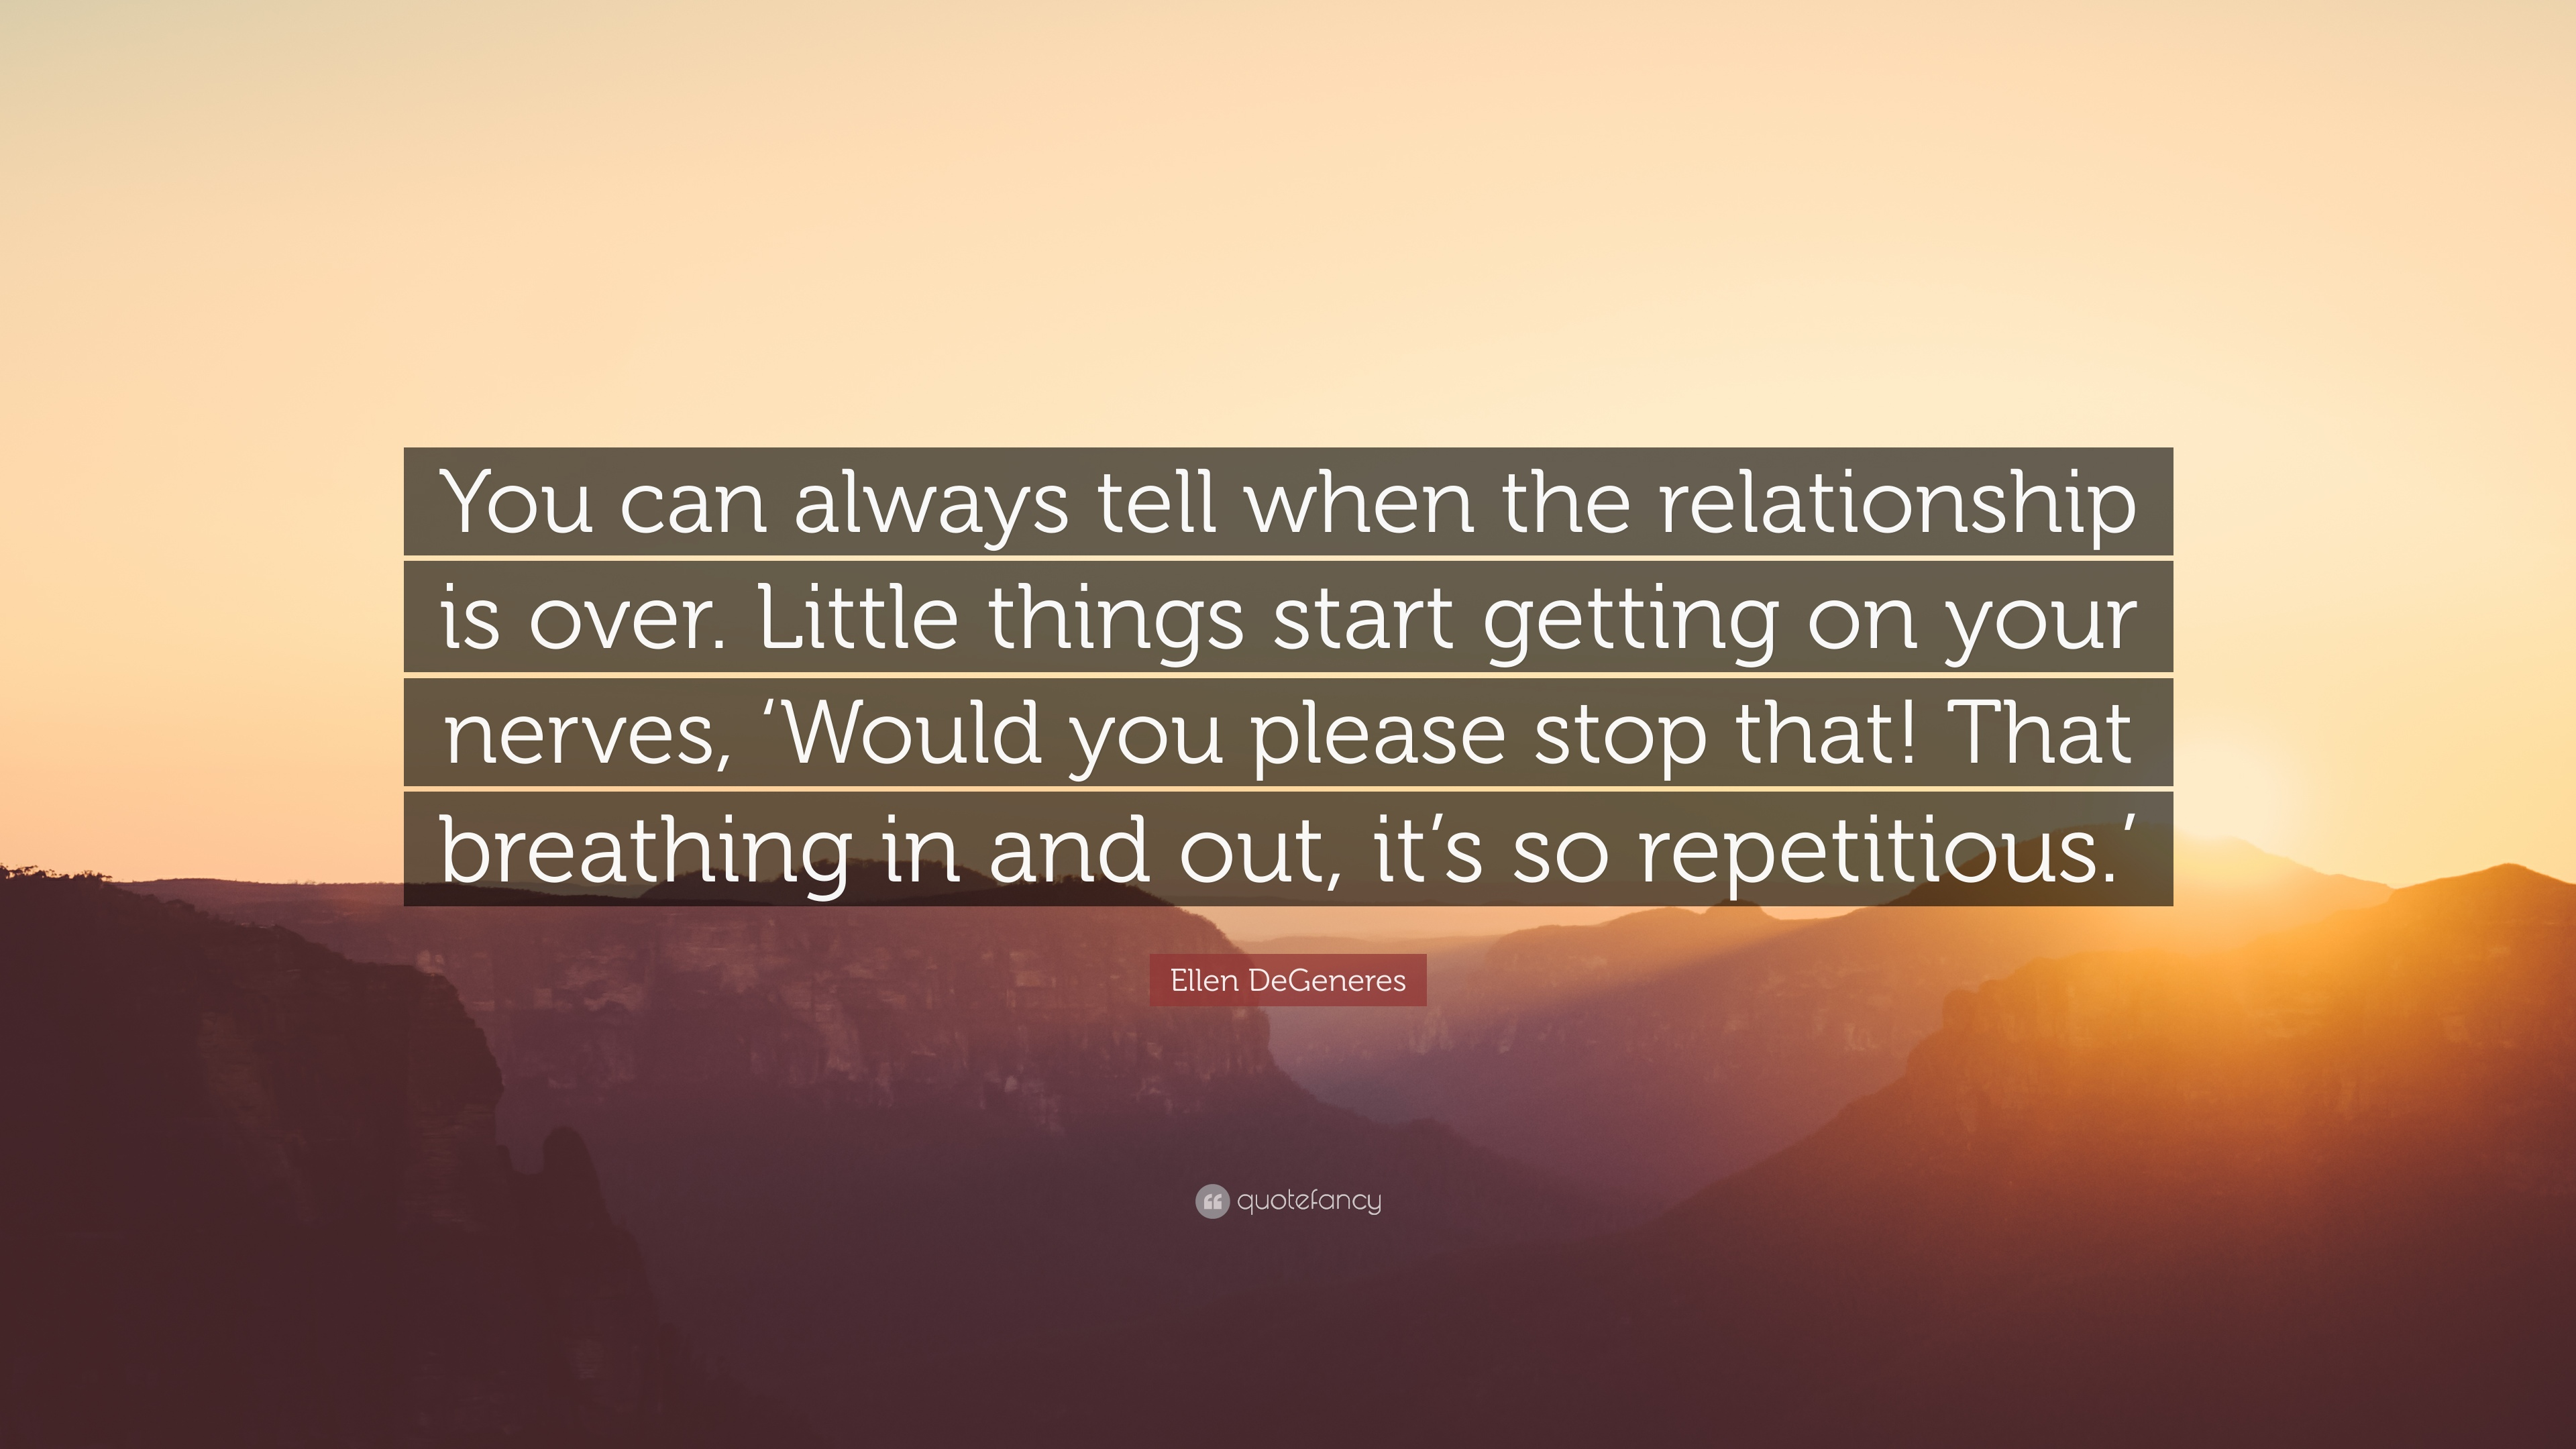 How to tell relationship is over